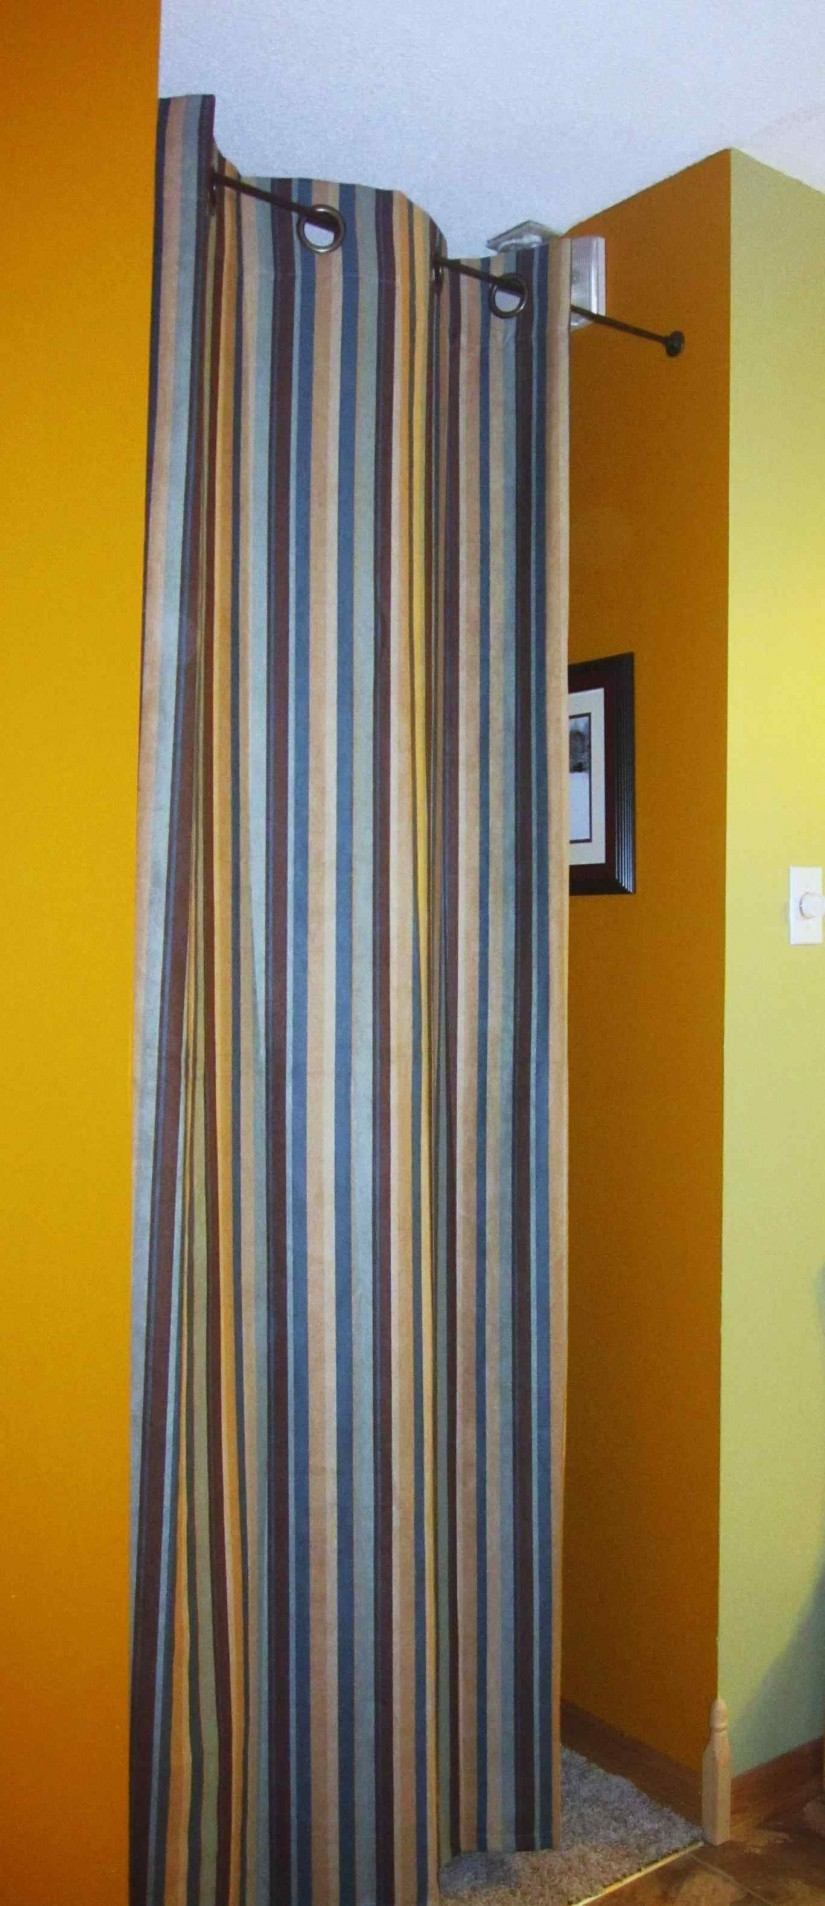 Curtain Room Dividers Diy | Room Divider Curtains | Curtain Dividers For Rooms